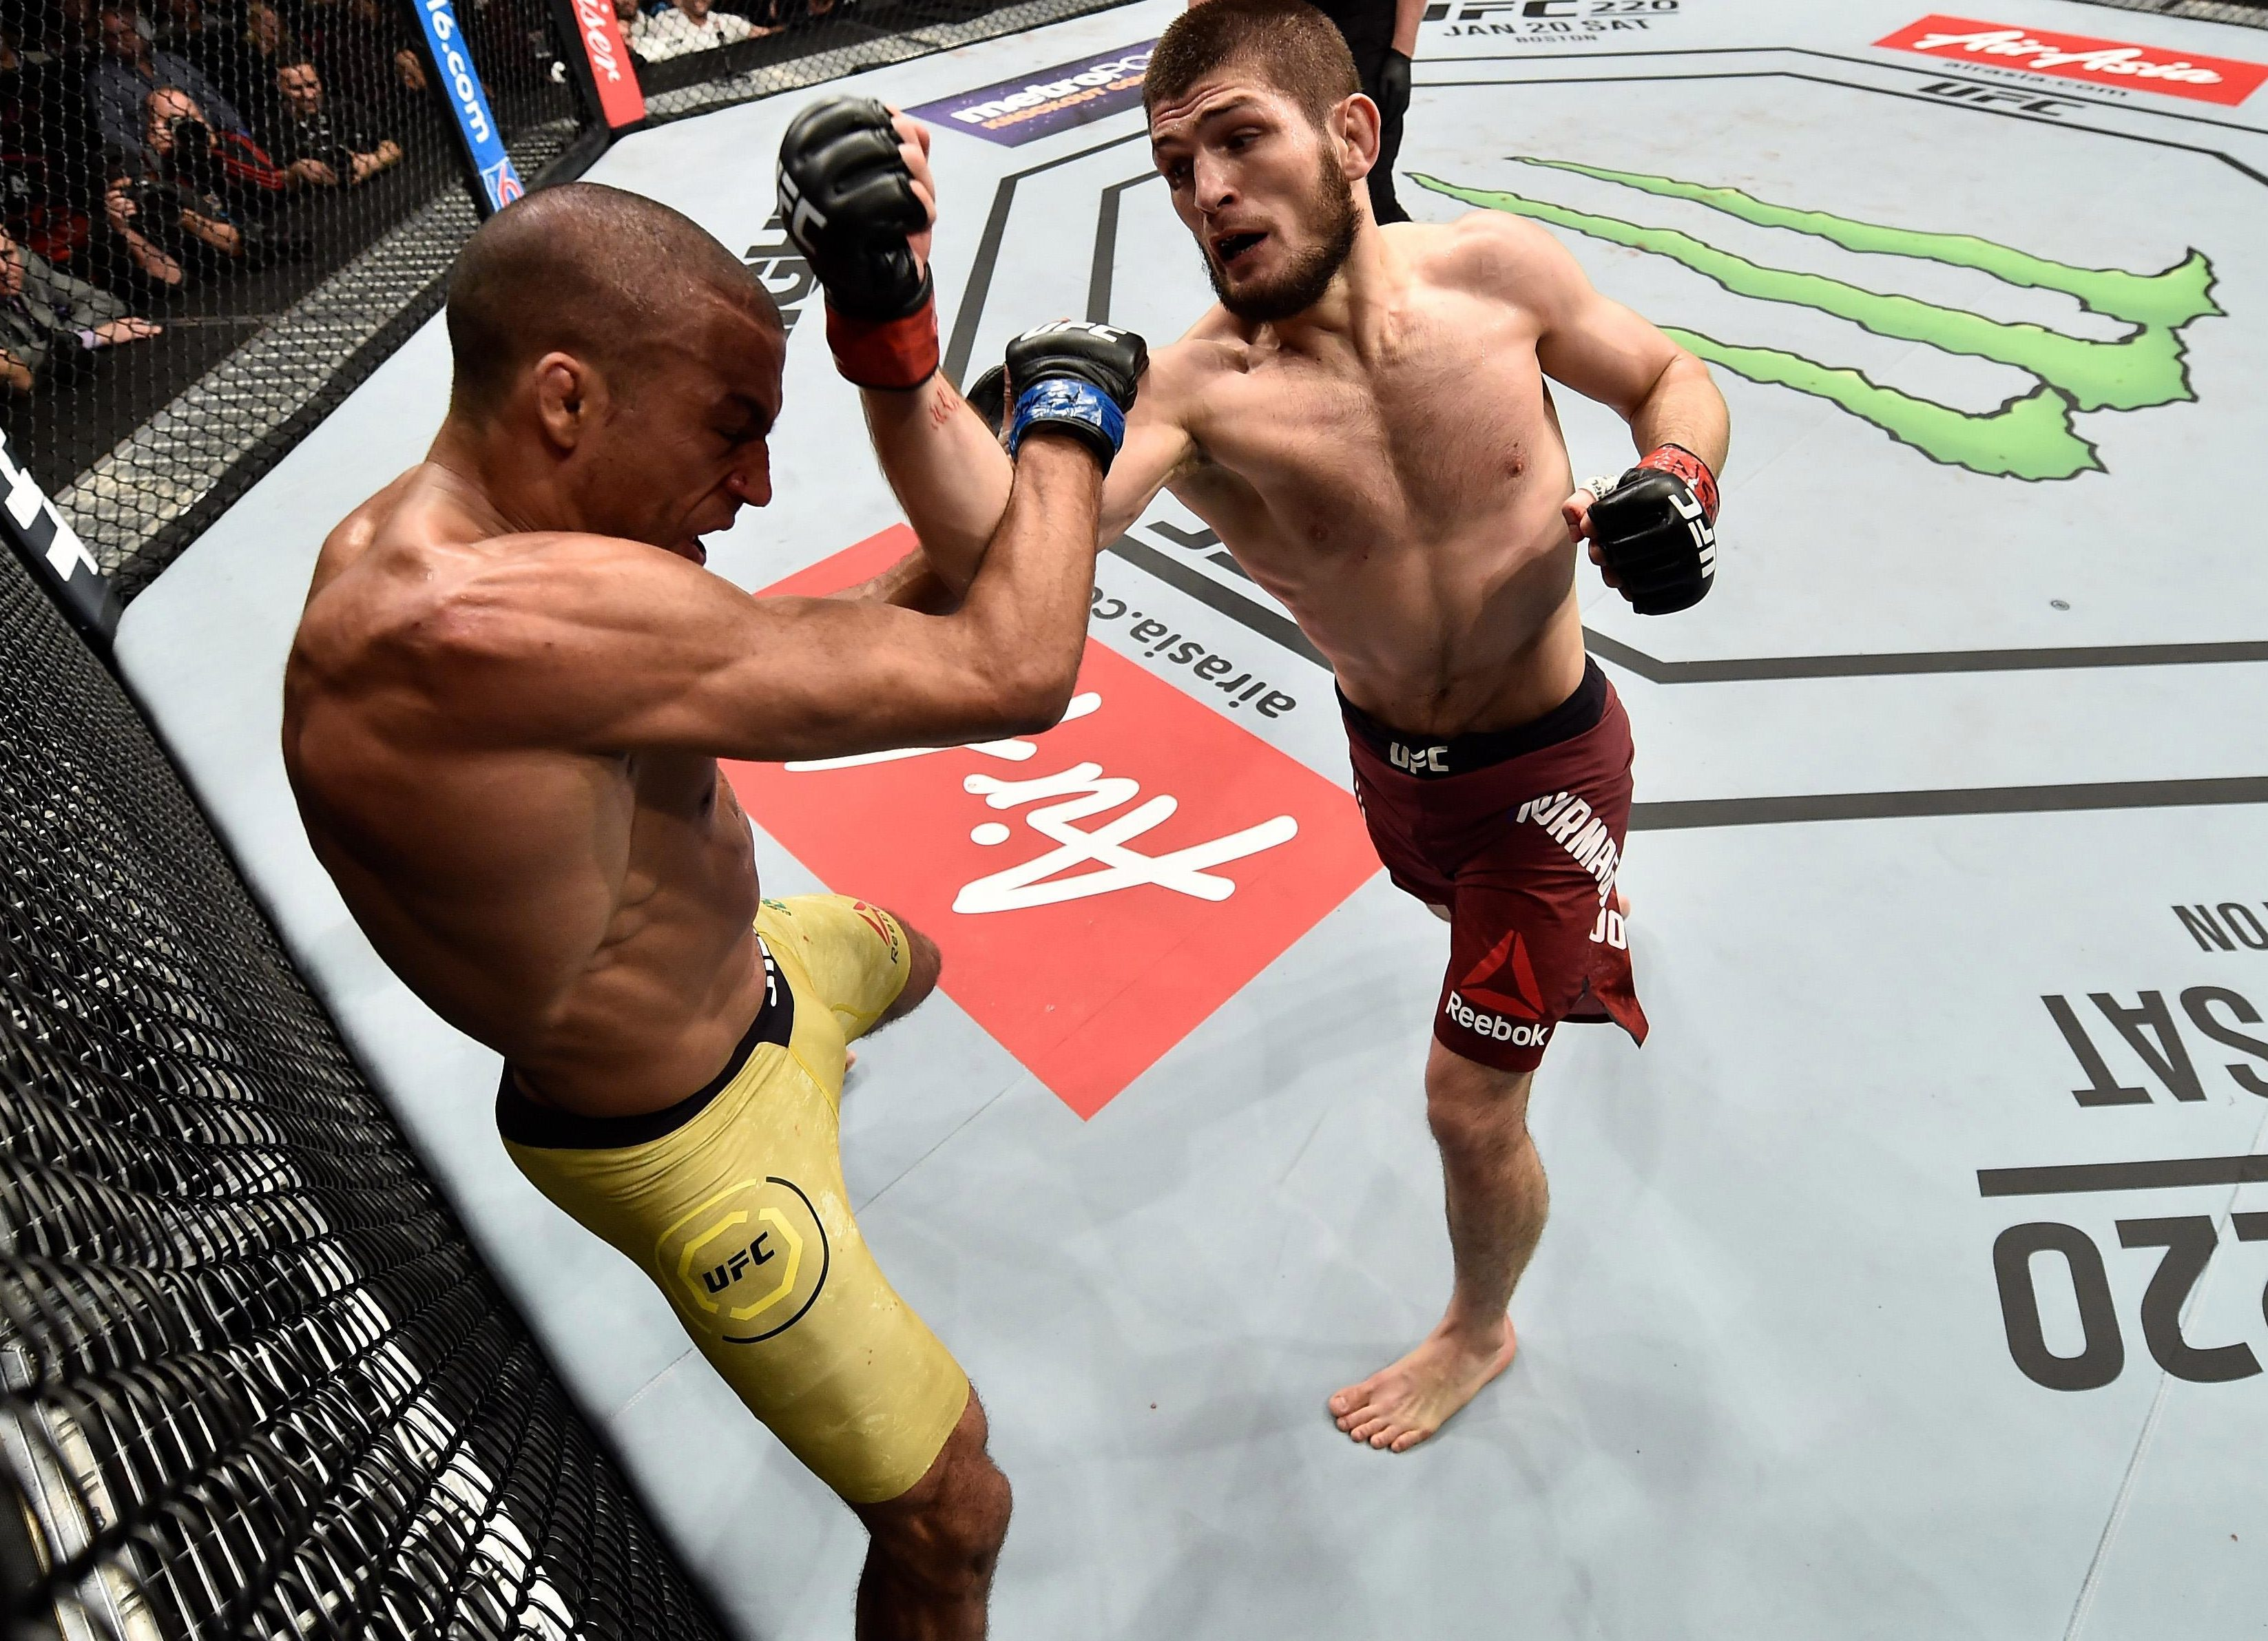 Russian star Khabib Nurmagomedov punches Brazilian Edson Barboza in their lightweight bout at UFC 219 - but is also hitting out verbally away from the ring